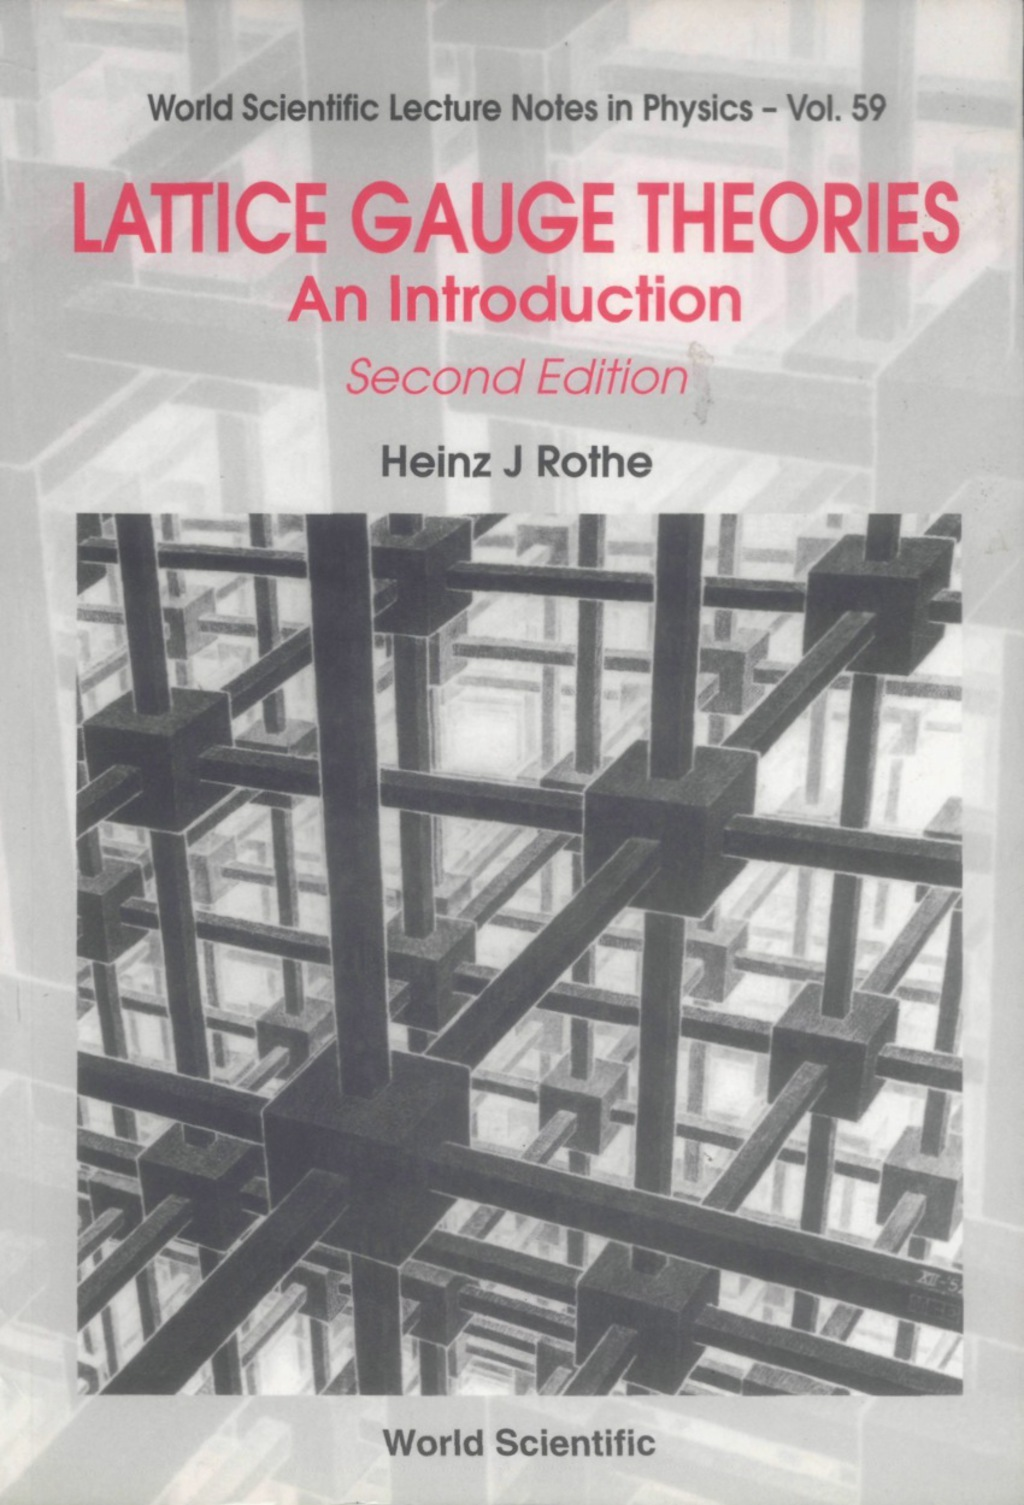 By Heinz J Rothe PRINTISBN: 9789813105041 E-TEXT ISBN: 9789813105041 Edition: 2